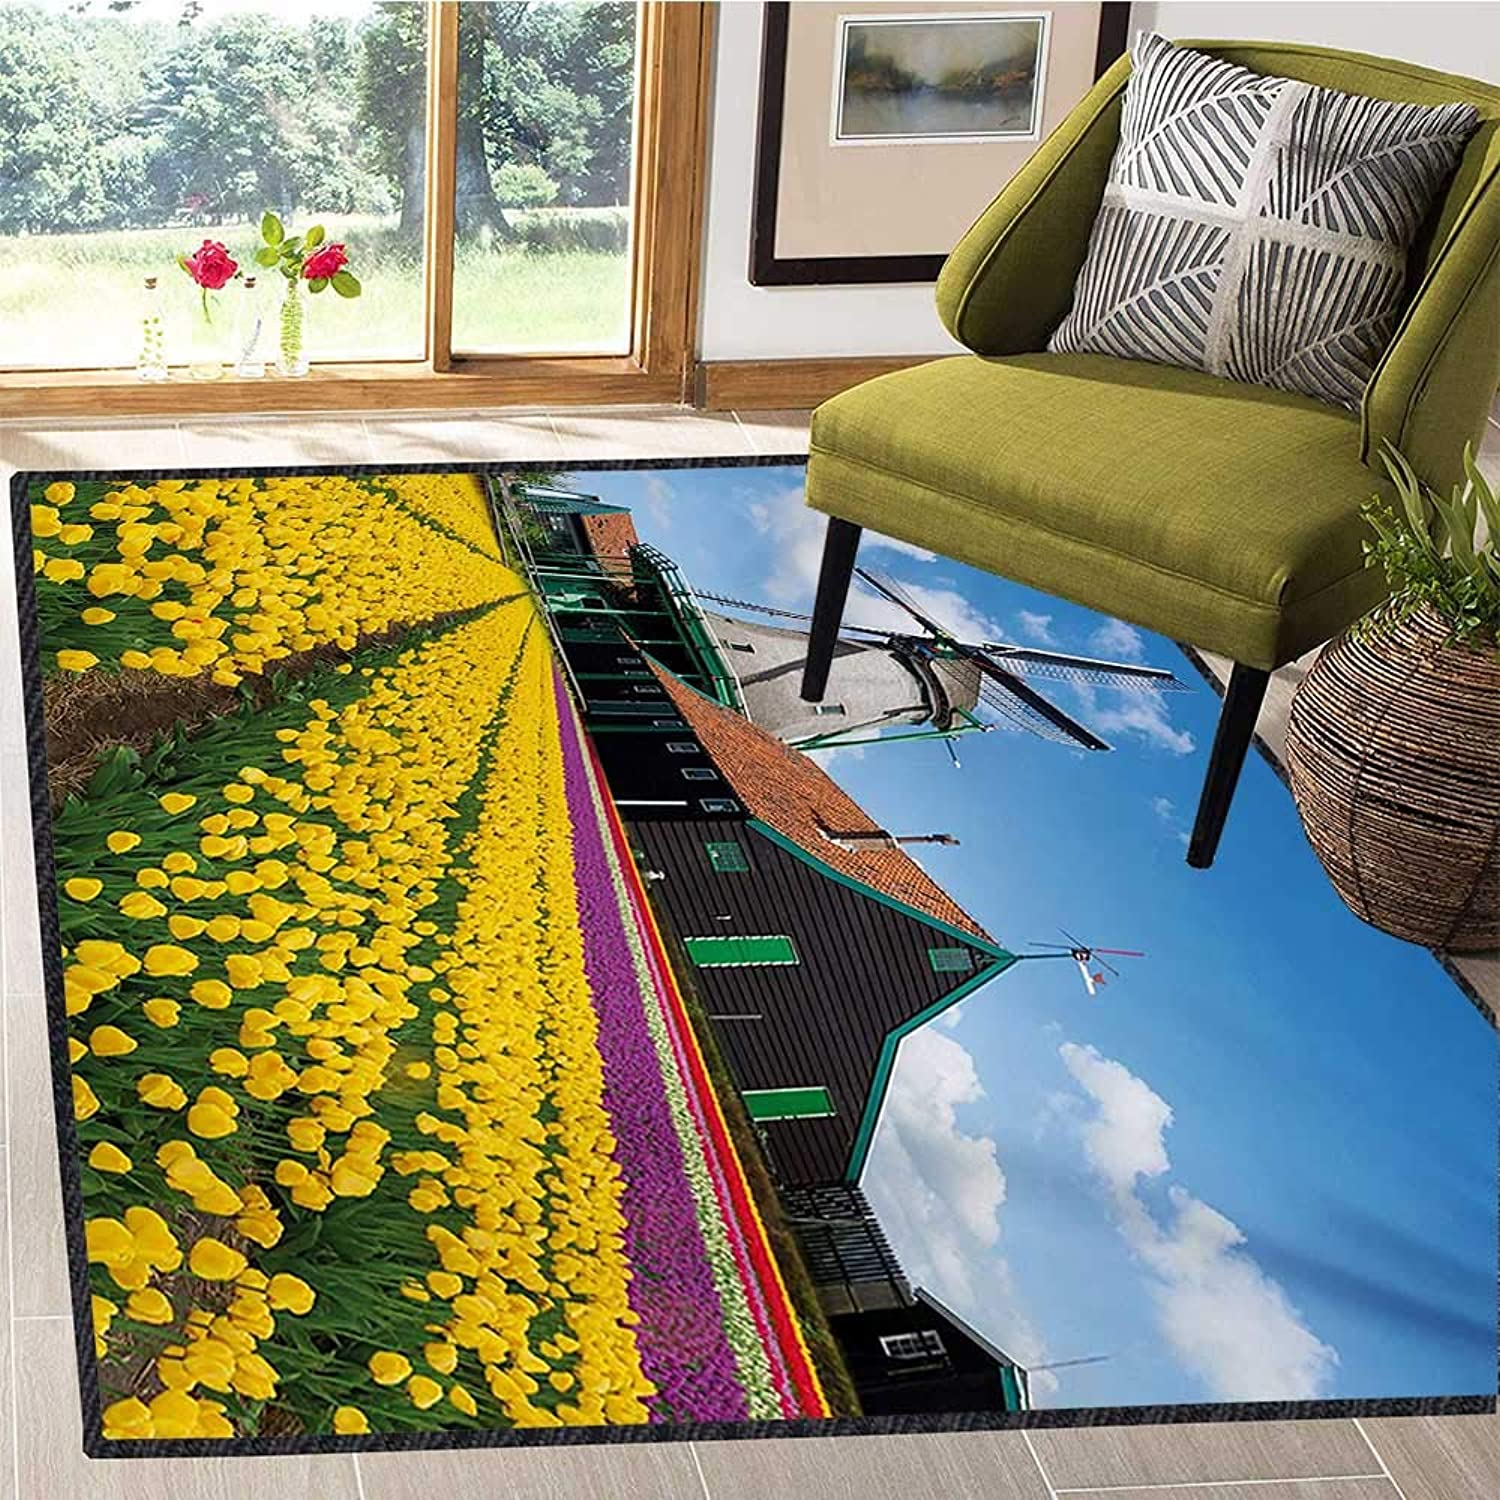 Windmill, Door Mats for Inside, Rustic Dutch Landscape with colorful Yellow Tulips in The European Countryside, Door Mats for Inside Non Slip Backing 6x7 Ft Multicolor